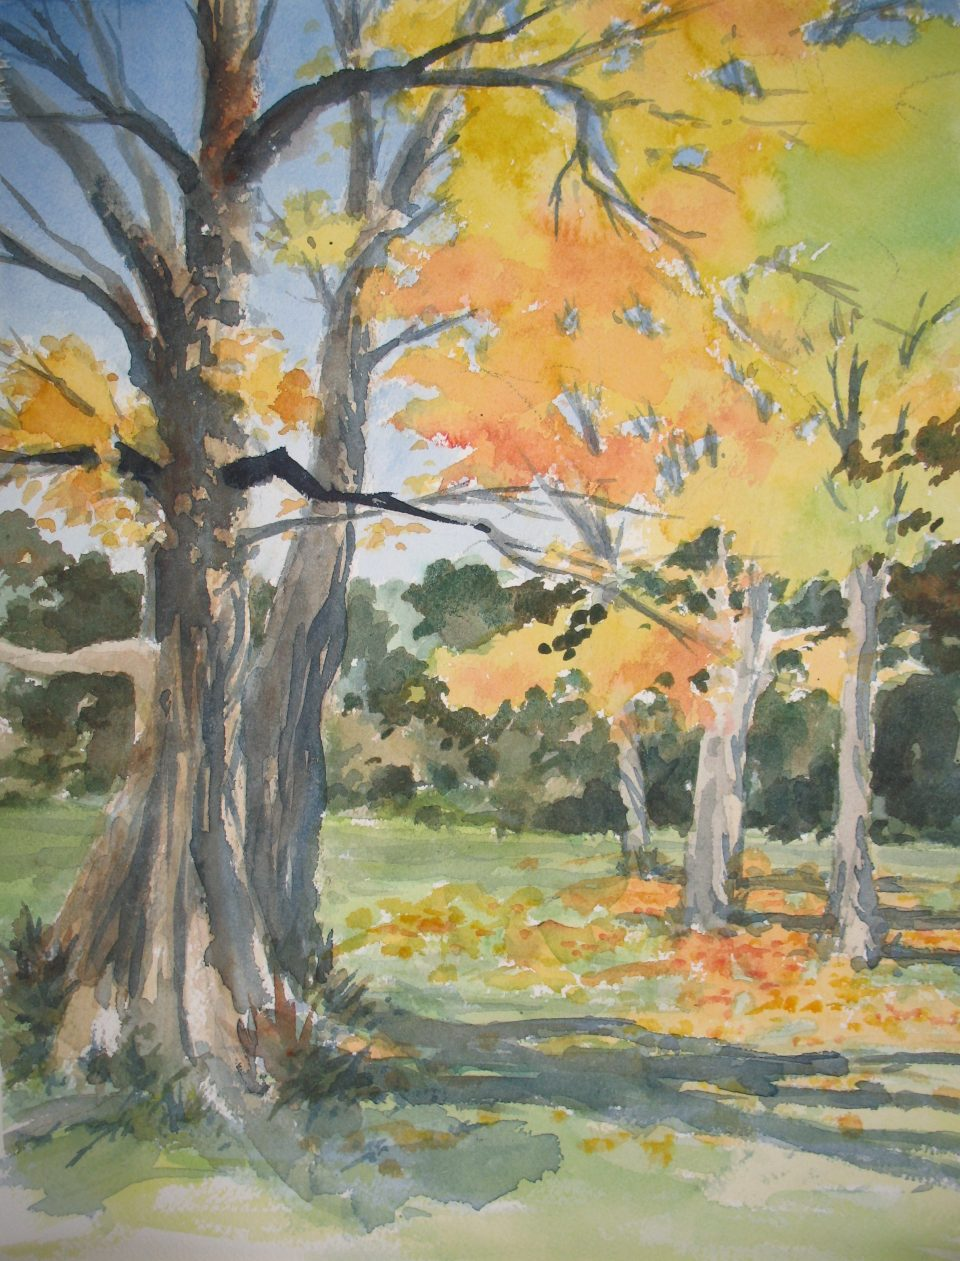 watercolor of tree trunks and fall foliage